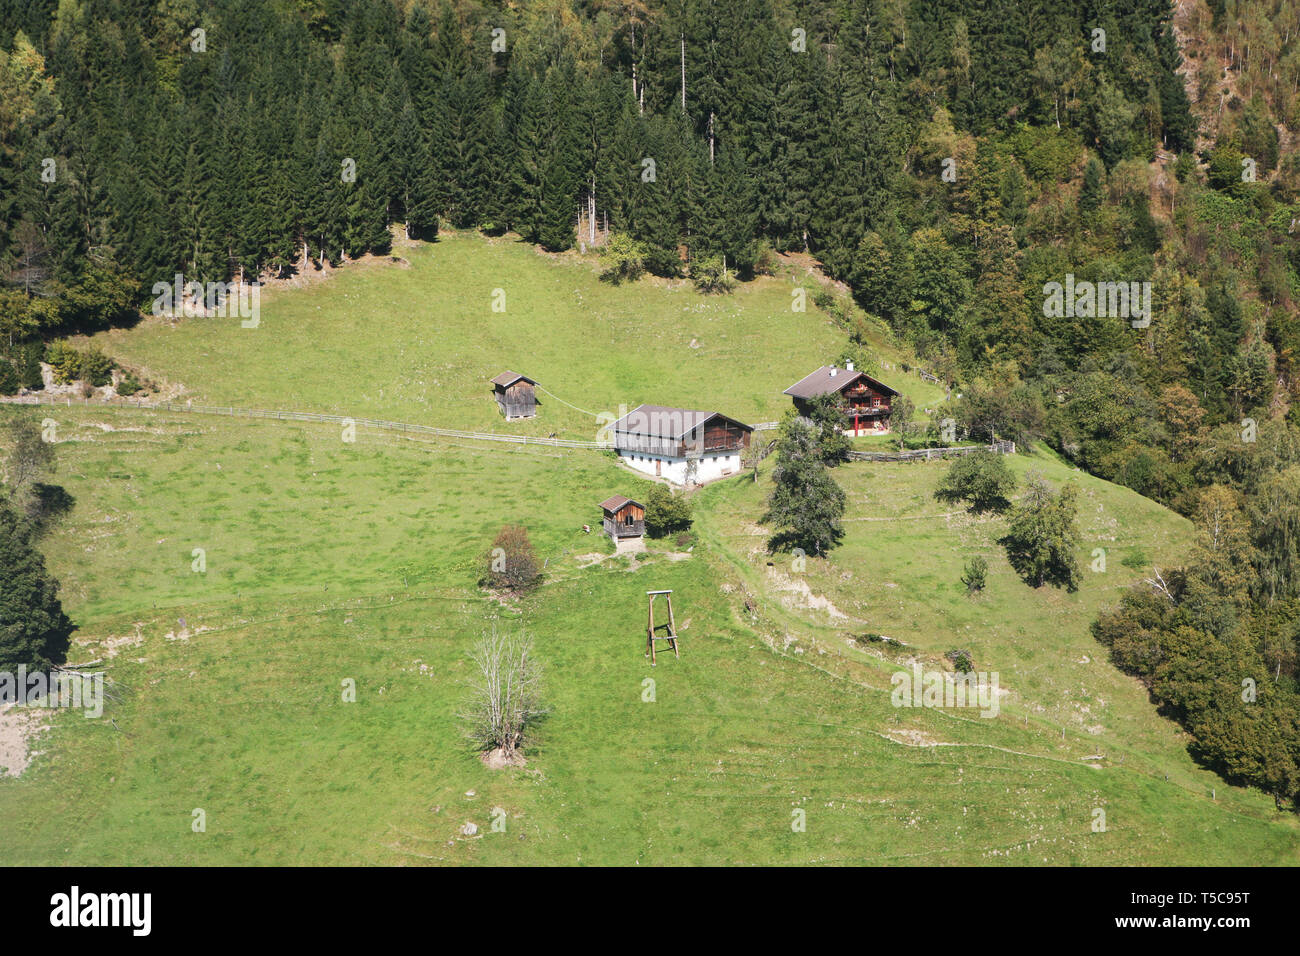 Landscape in Austria - Zell am See - Europe Stock Photo